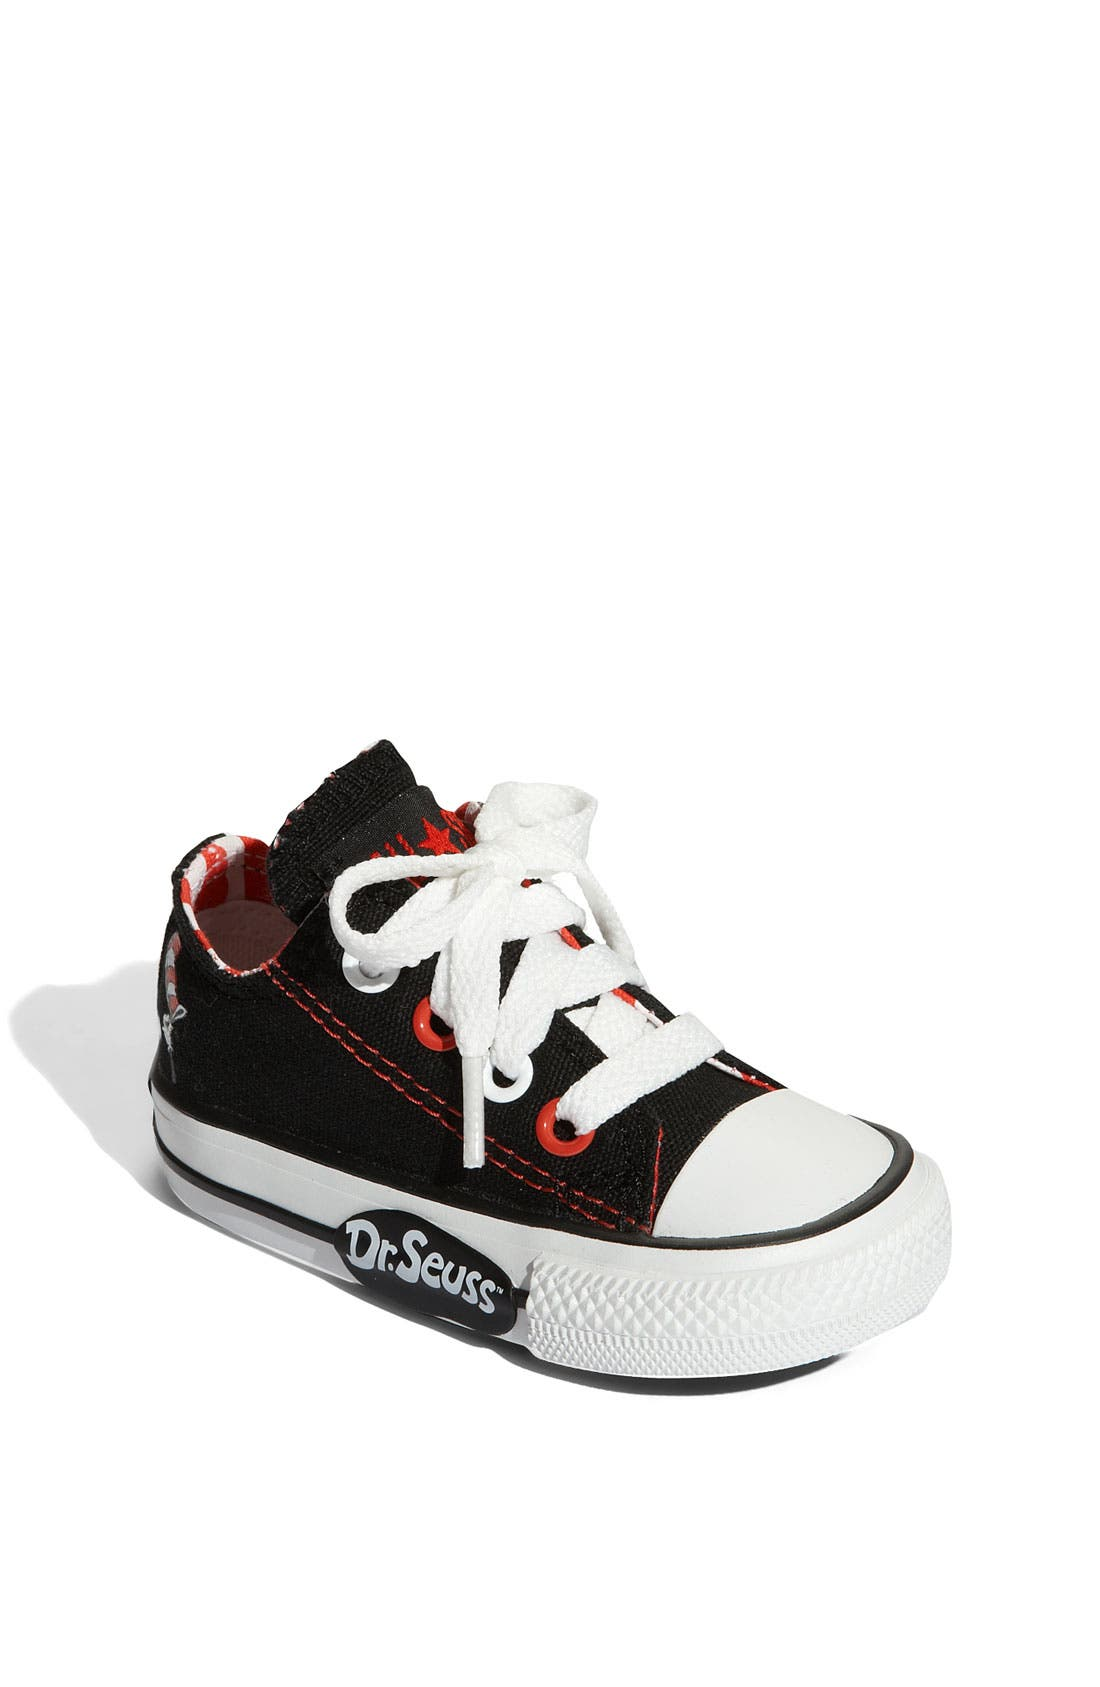 Alternate Image 1 Selected - Converse Chuck Taylor® 'Dr. Seuss' Sneaker (Baby, Walker & Toddler)